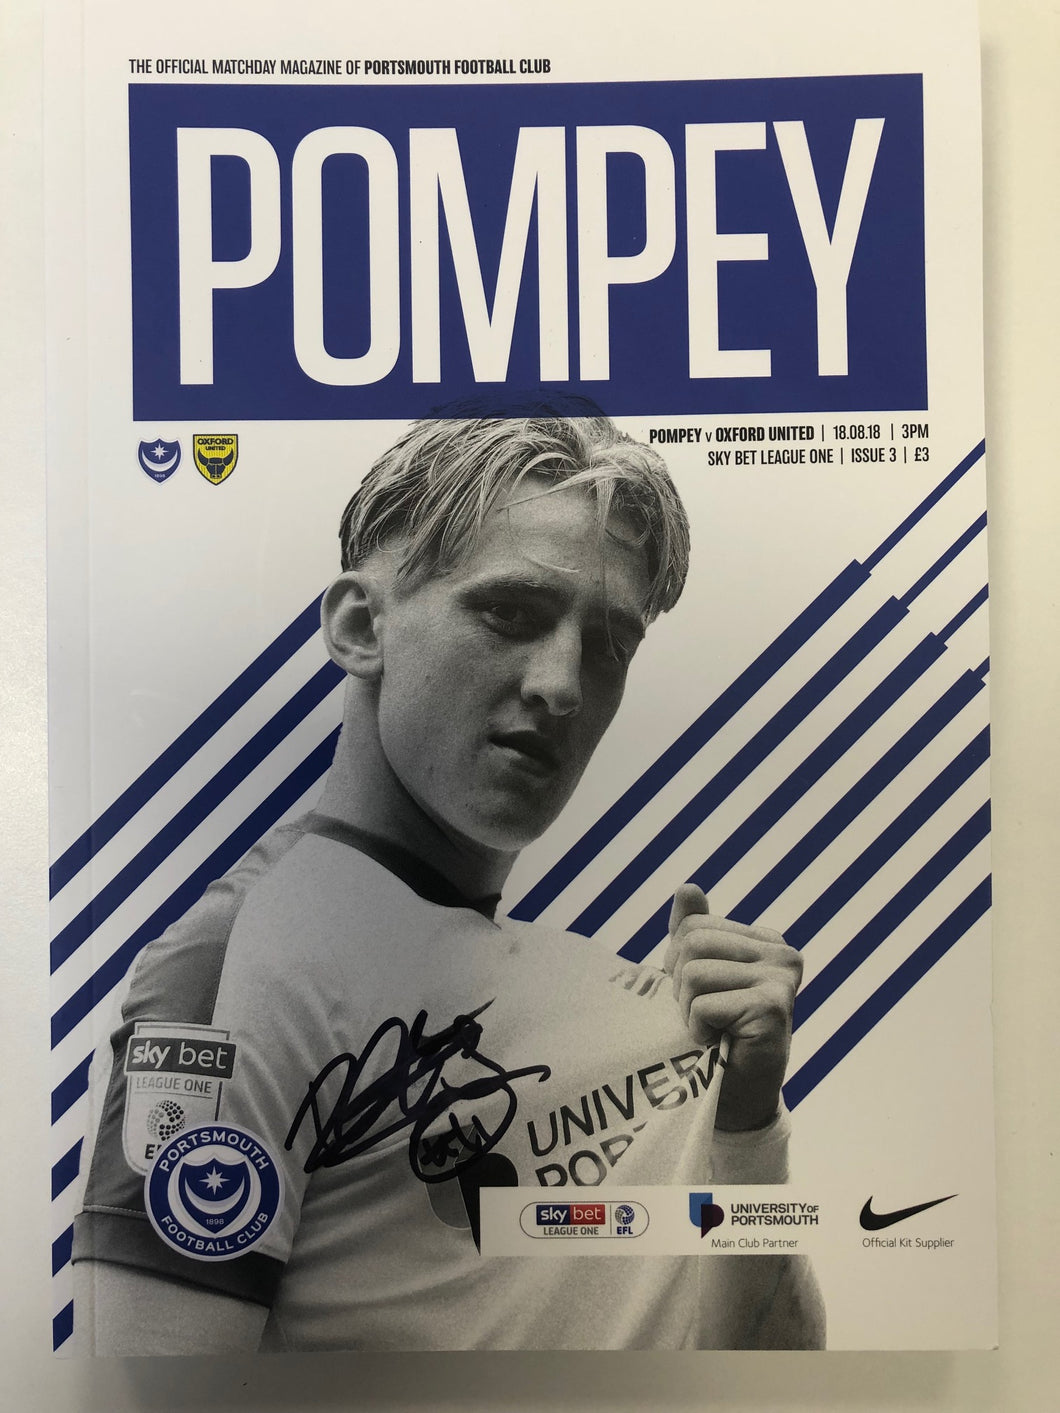 Signed by Ronan Curtis Match Day Programme Vs Oxford United FC